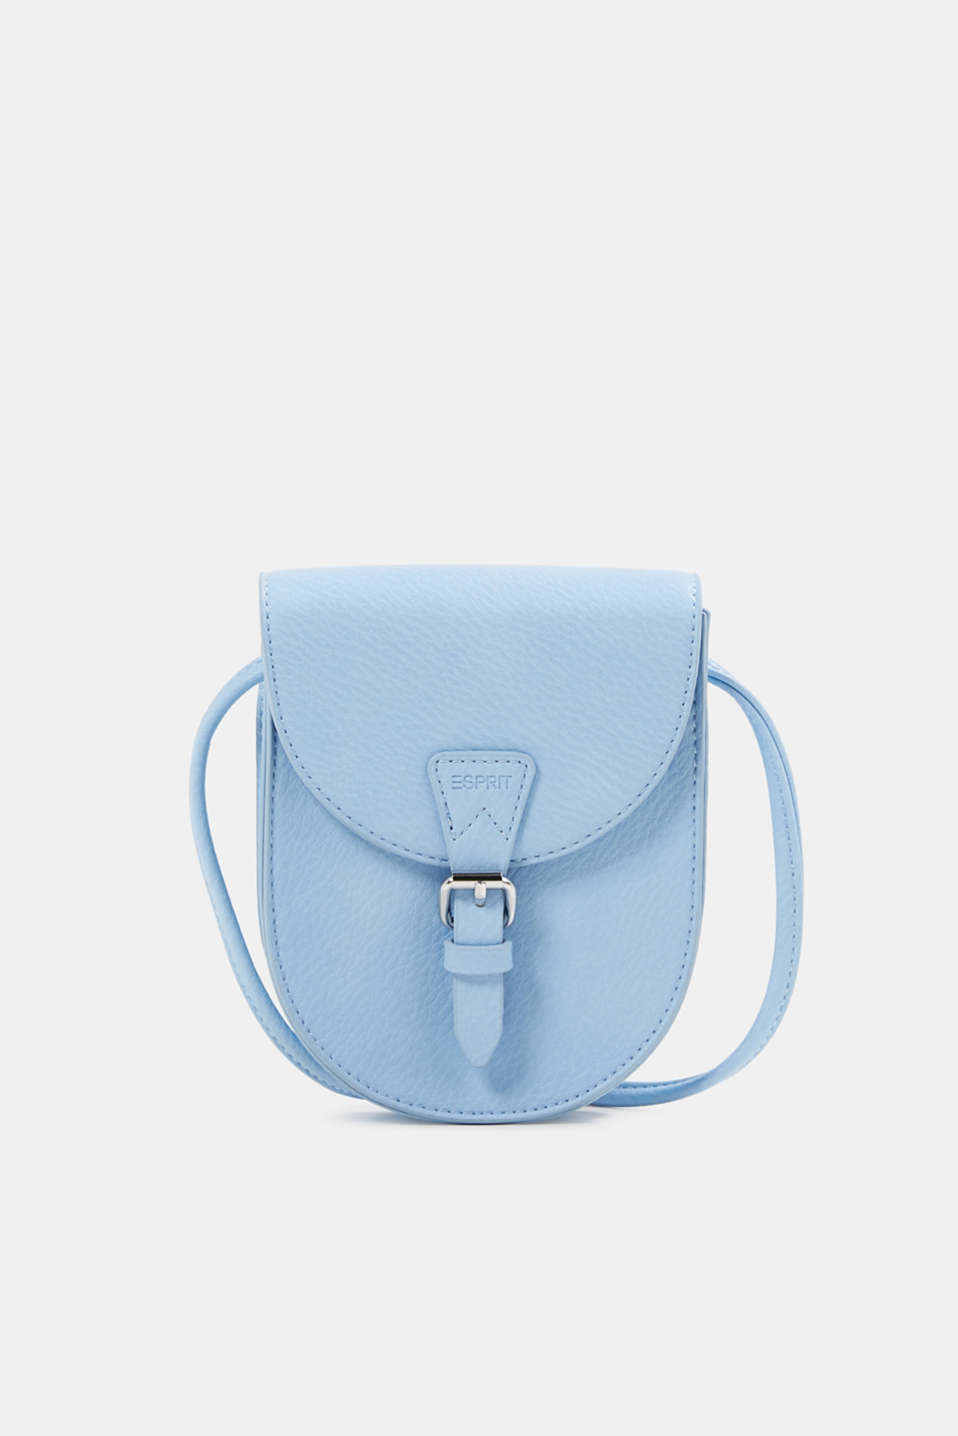 Esprit - Collection Susie T. : mini-sac, végan